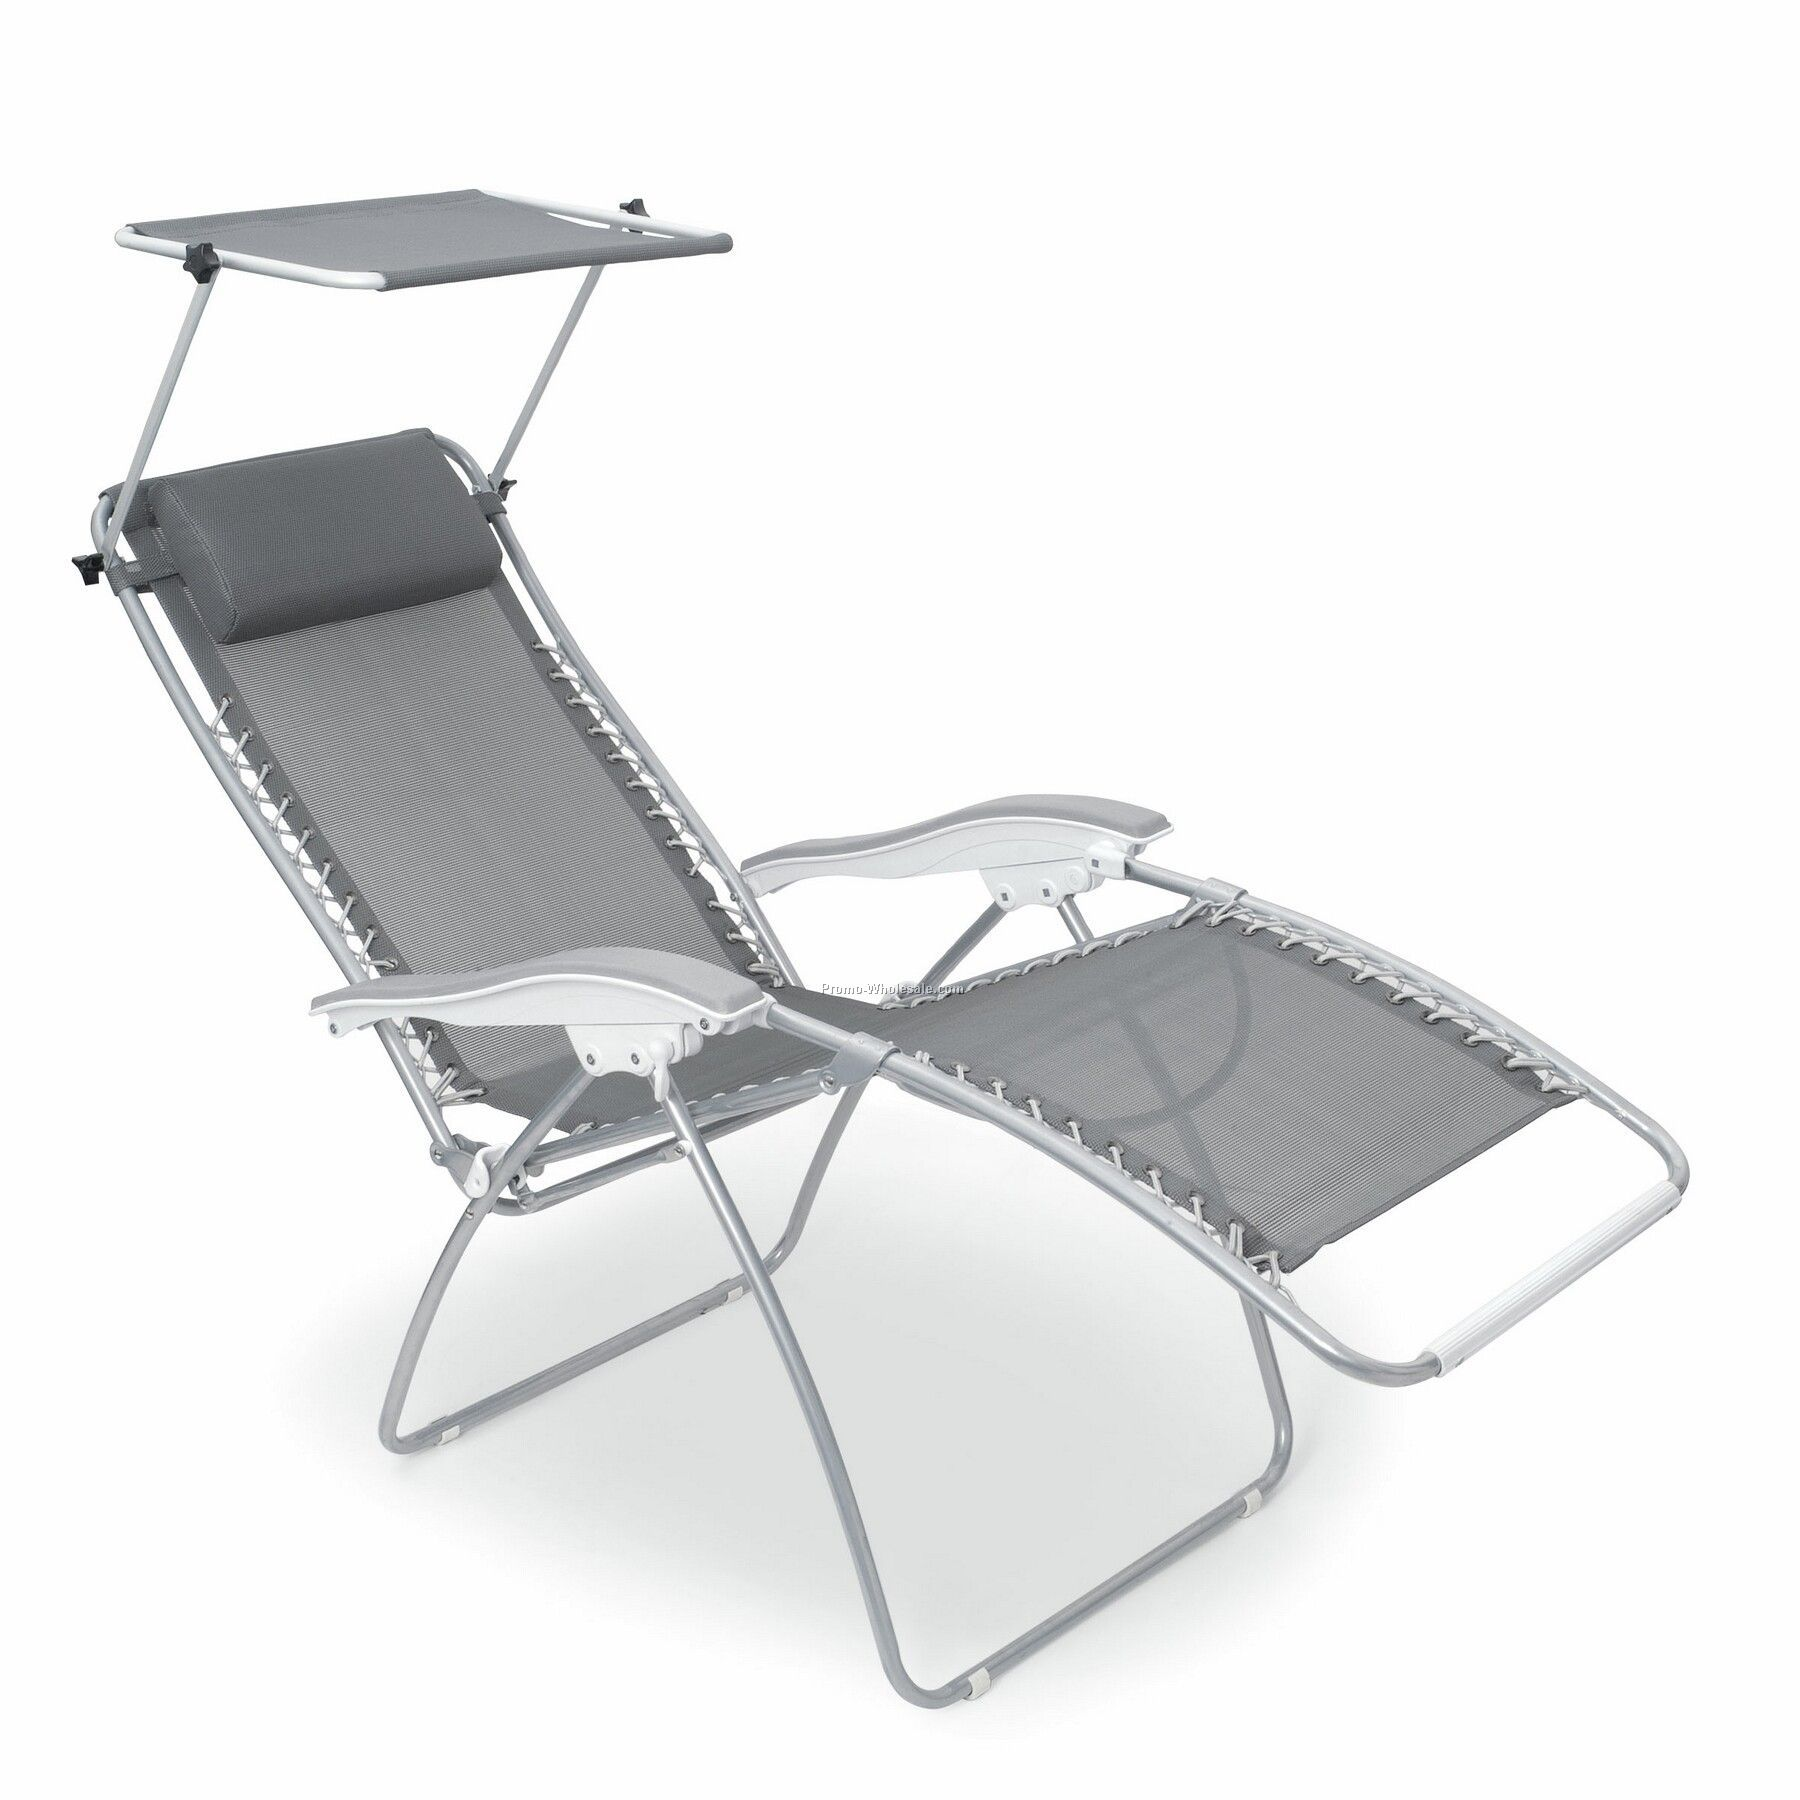 Beach lounge chair with canopy - Serenity Reclining Lounge Chair With Adjustable Sunshade